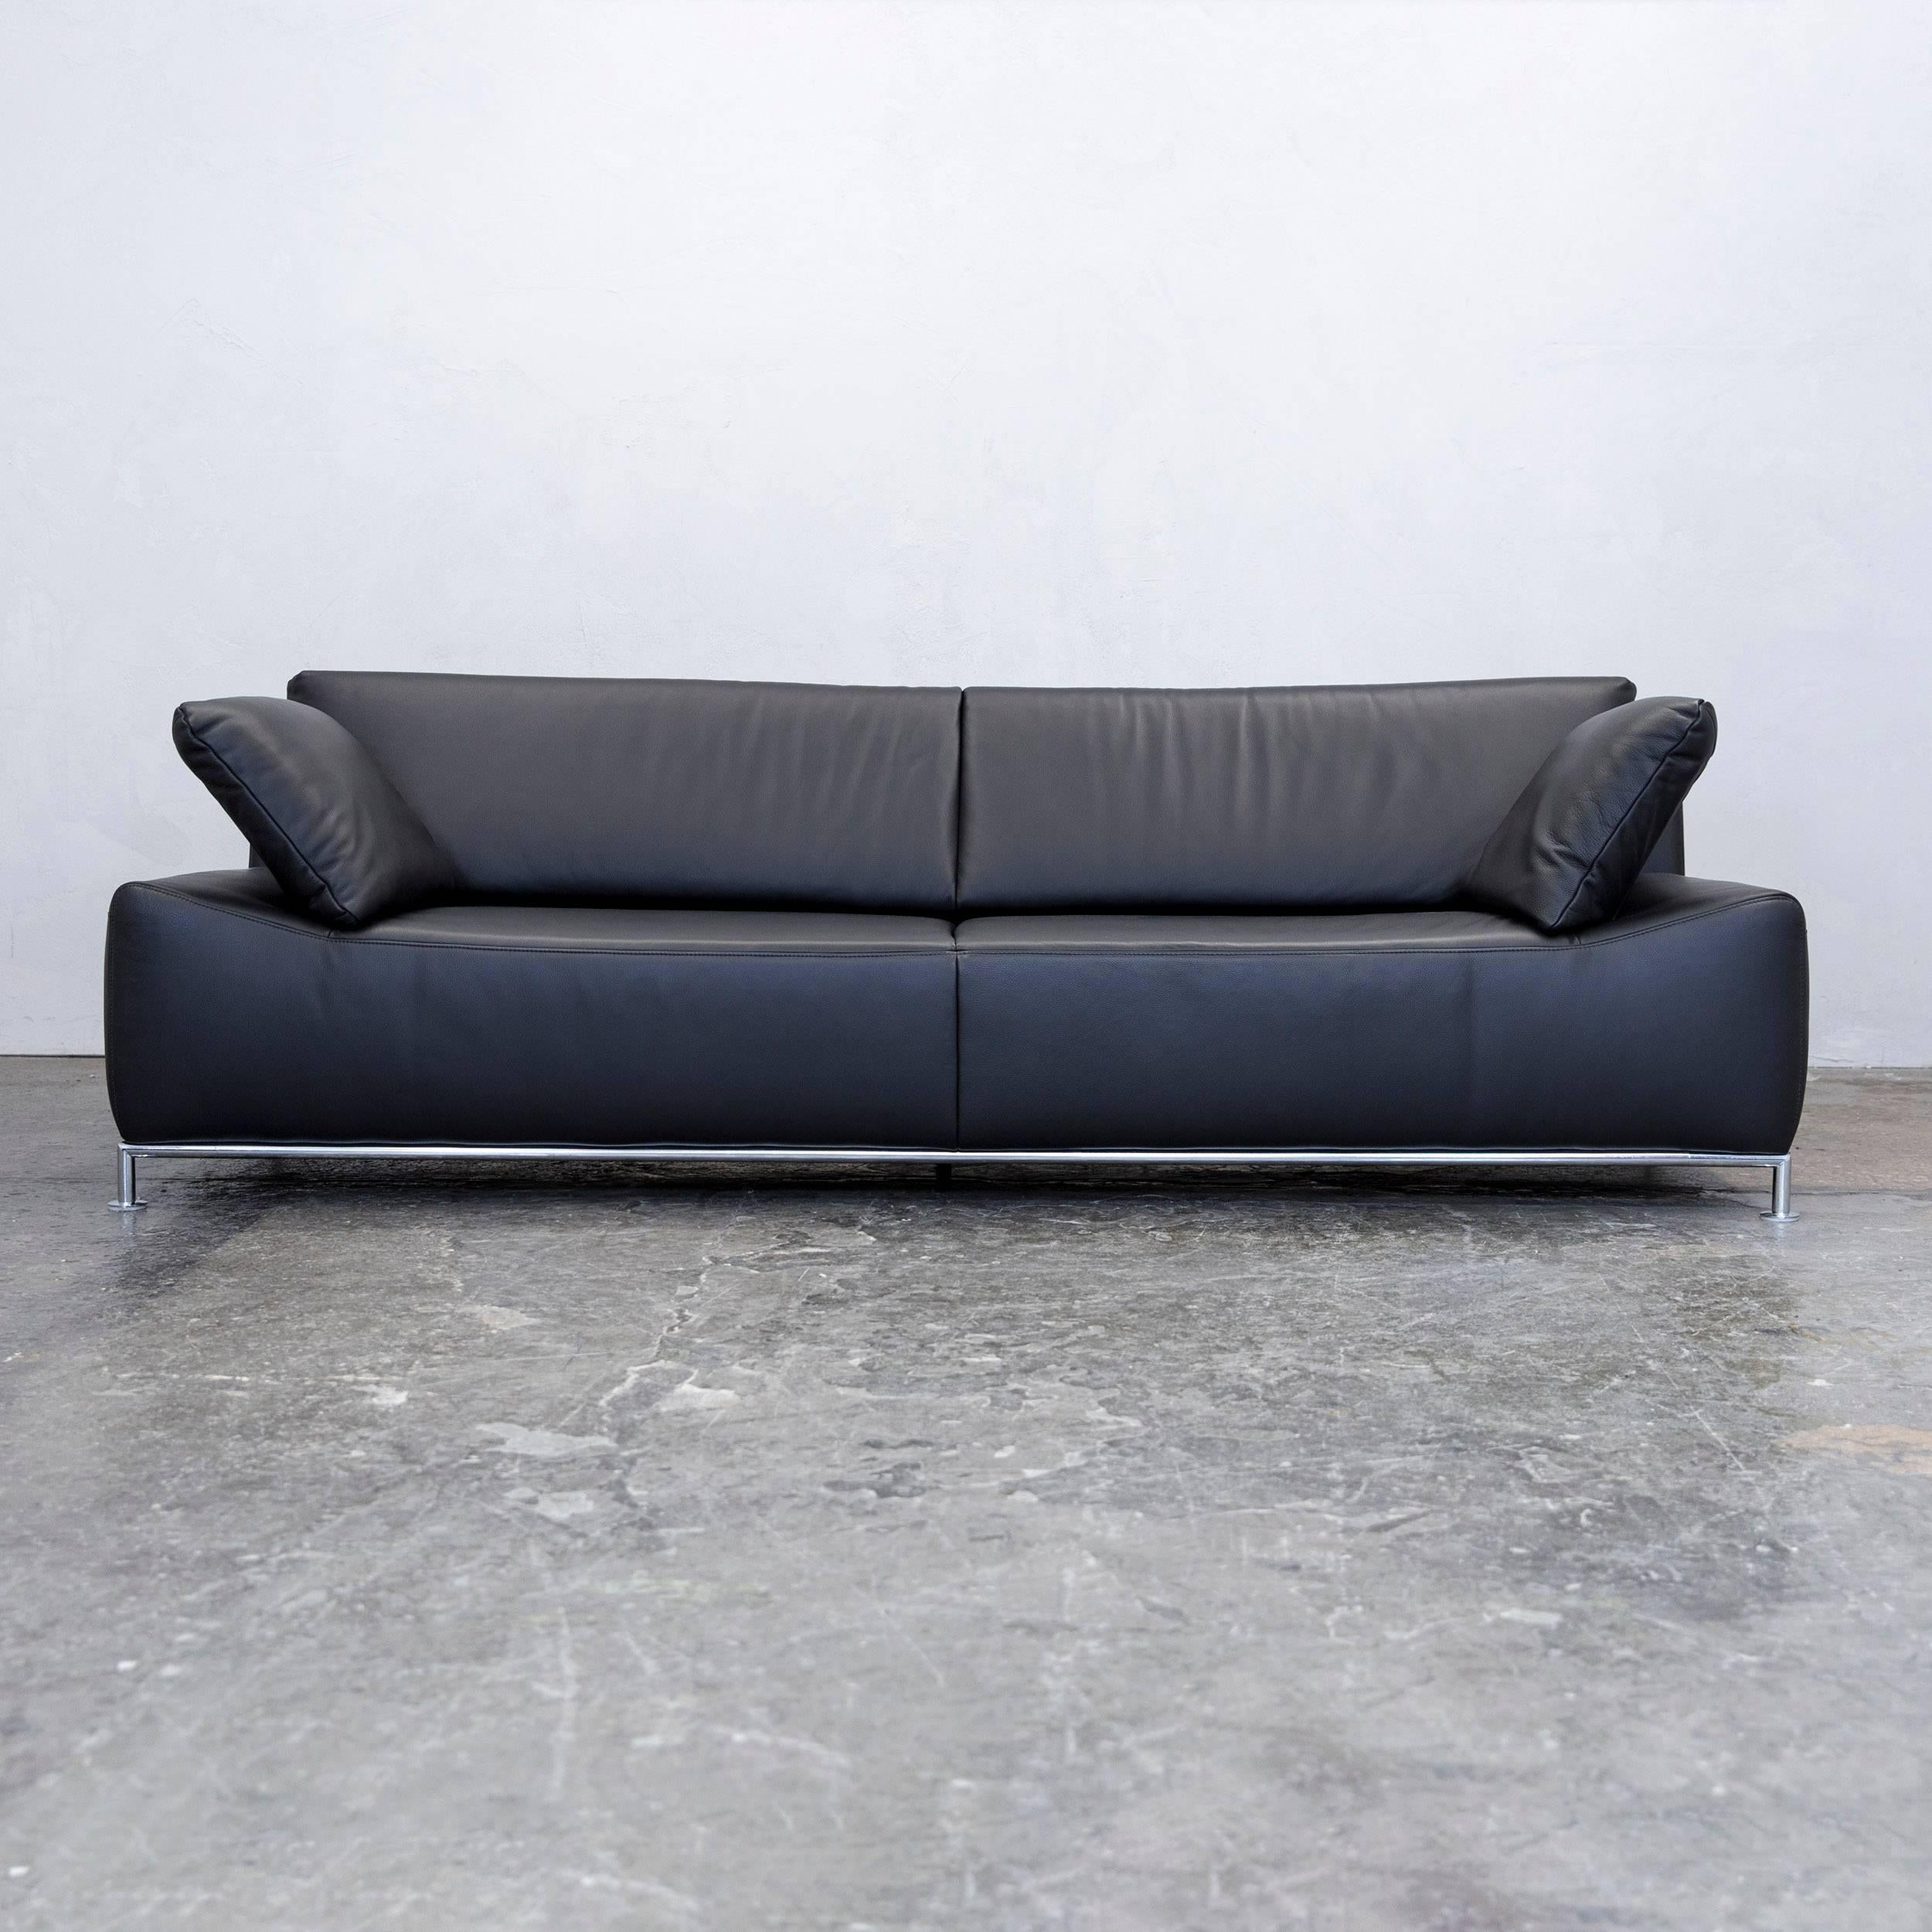 Ewald Schillig Flex Plus Sessel Couch Schillig Affordable Ewald Schillig Designer Sessel